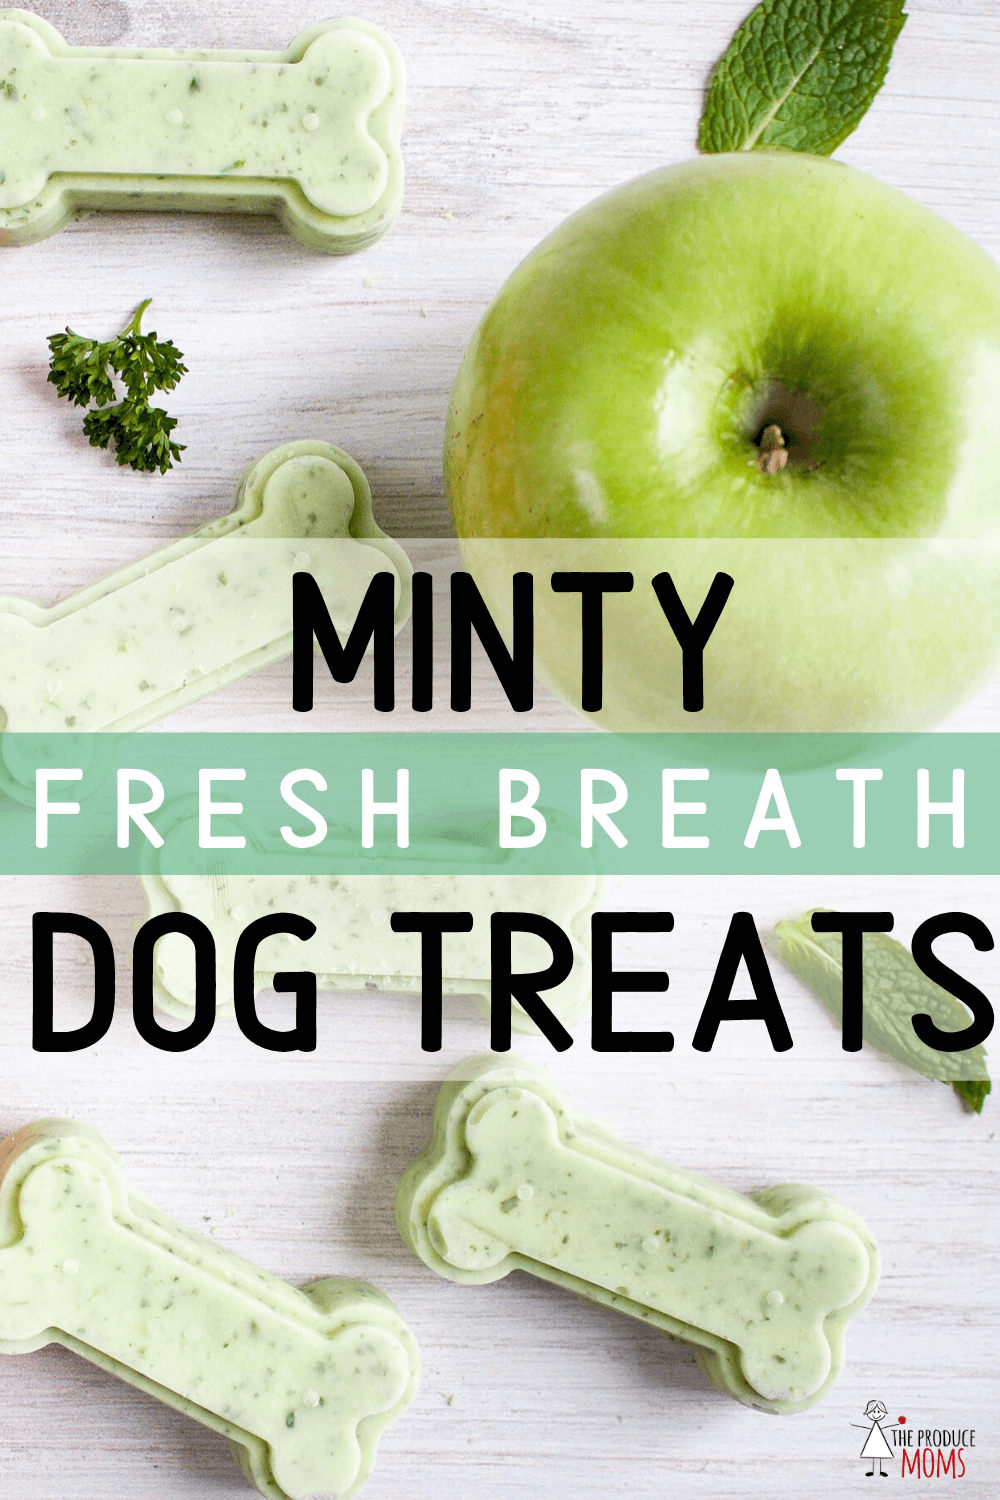 Minty Fresh Breath Dog Treats